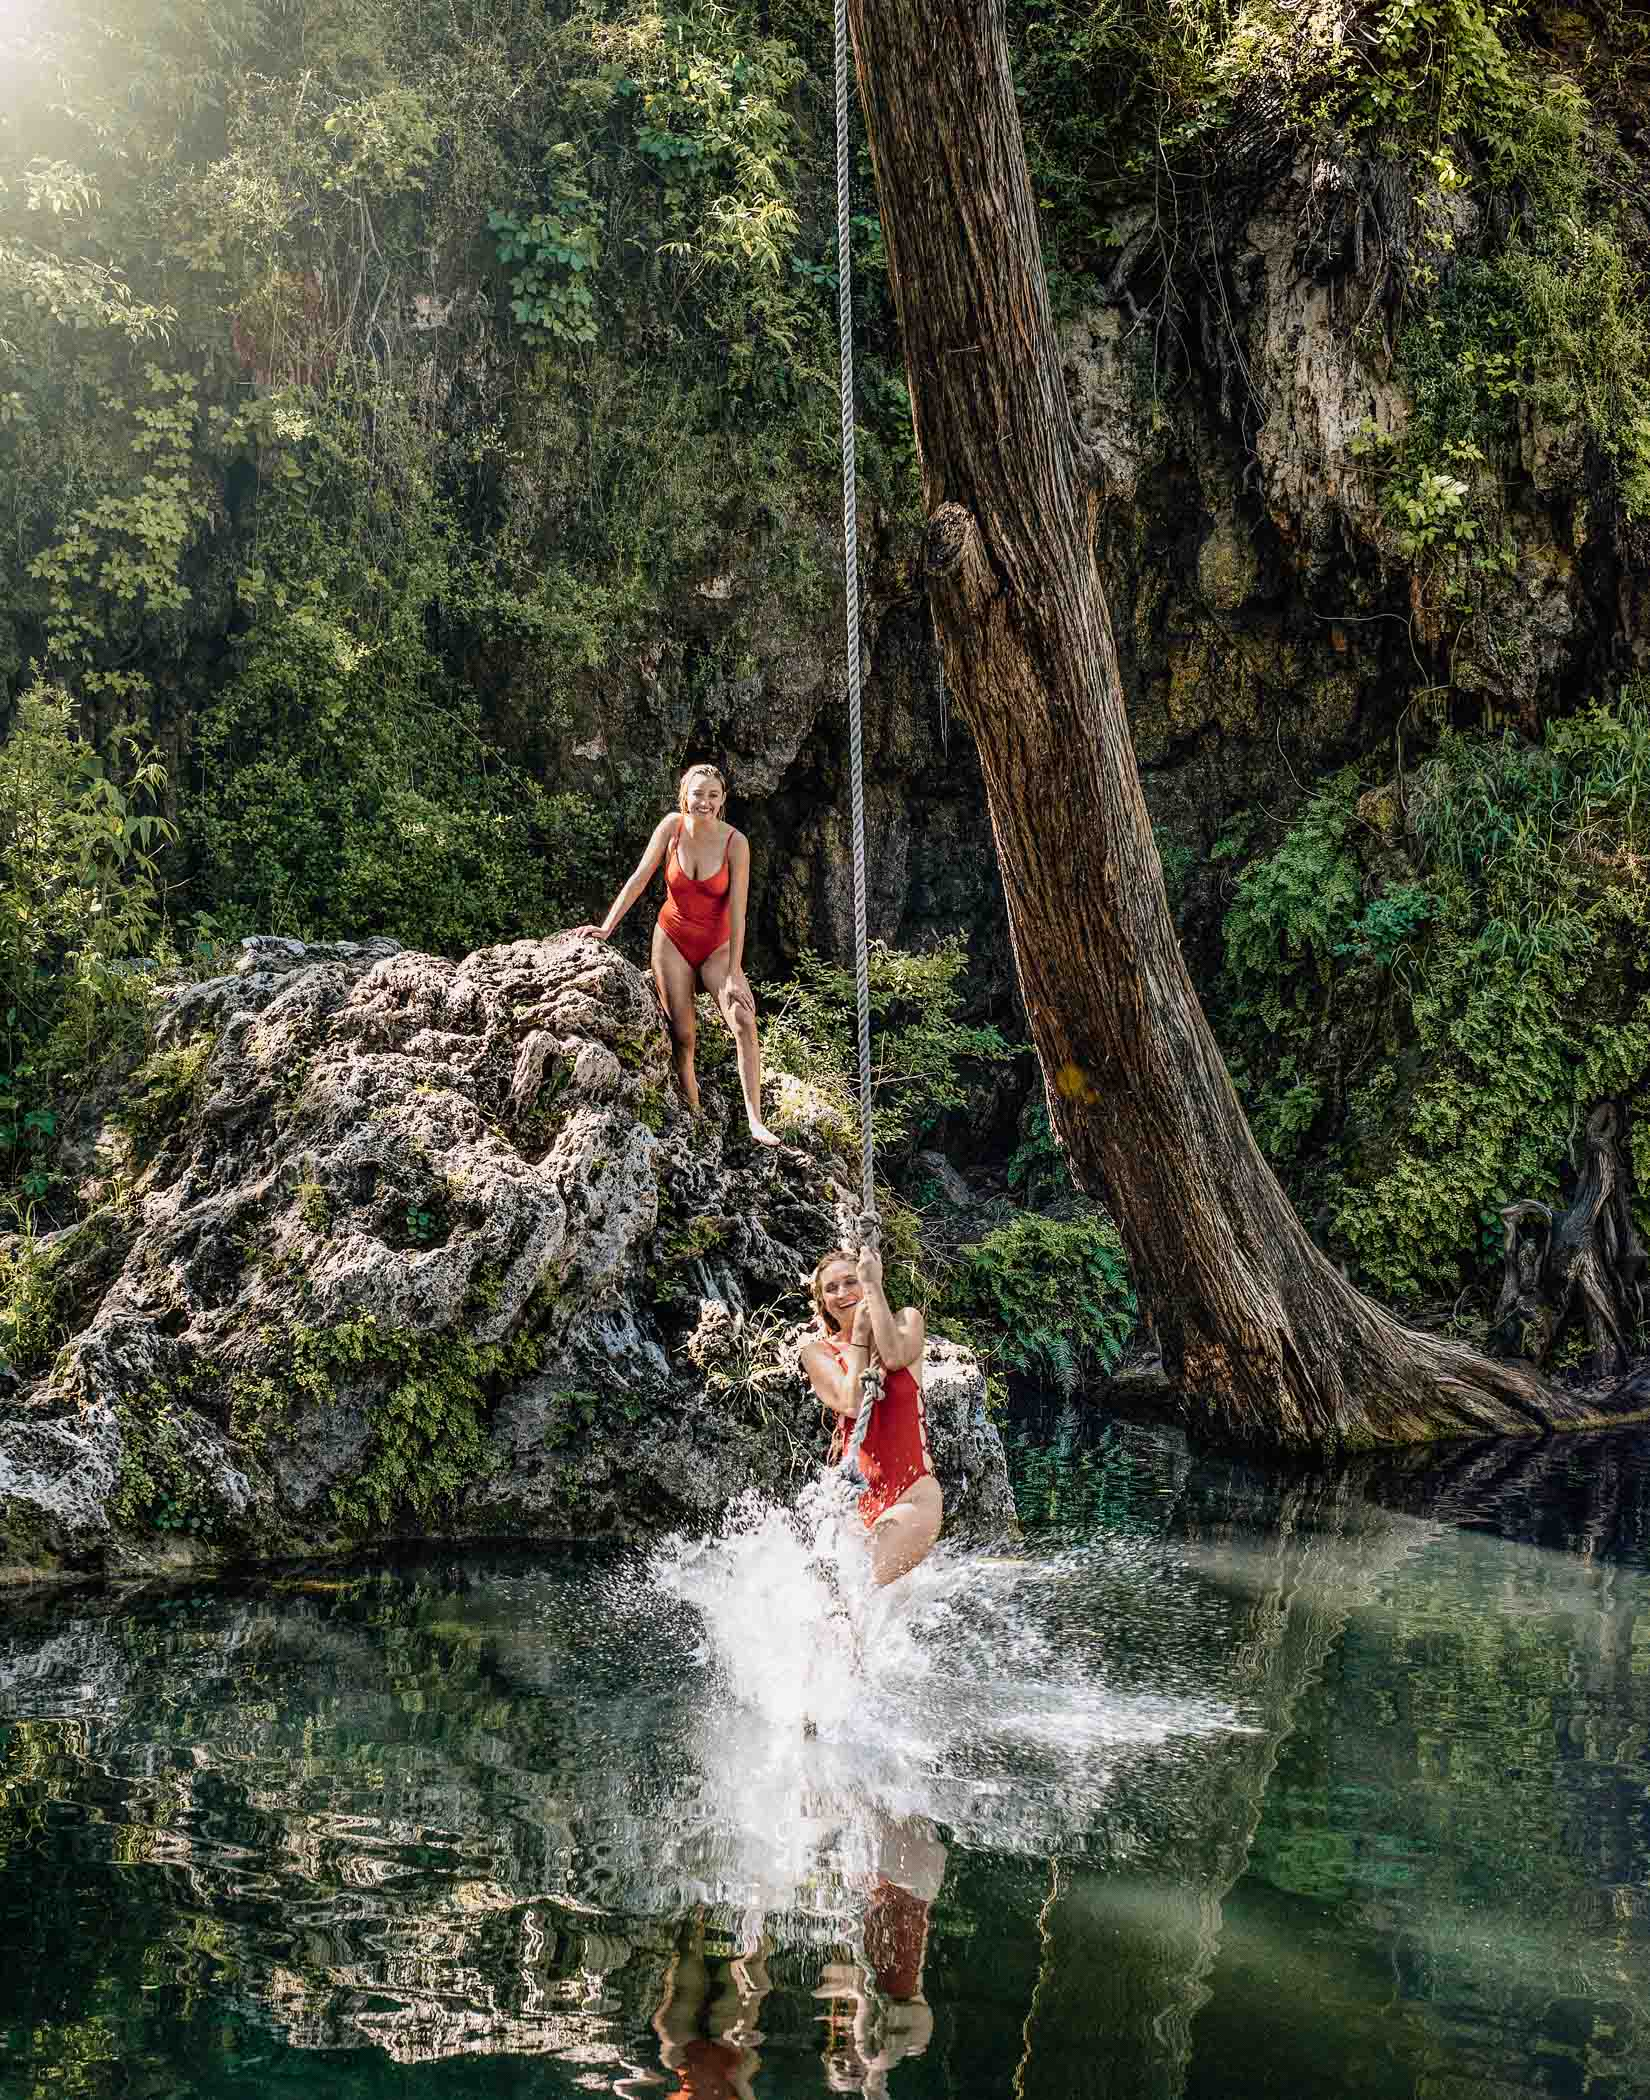 Young women enjoy a rope swing at Krause Springs water hole in TX